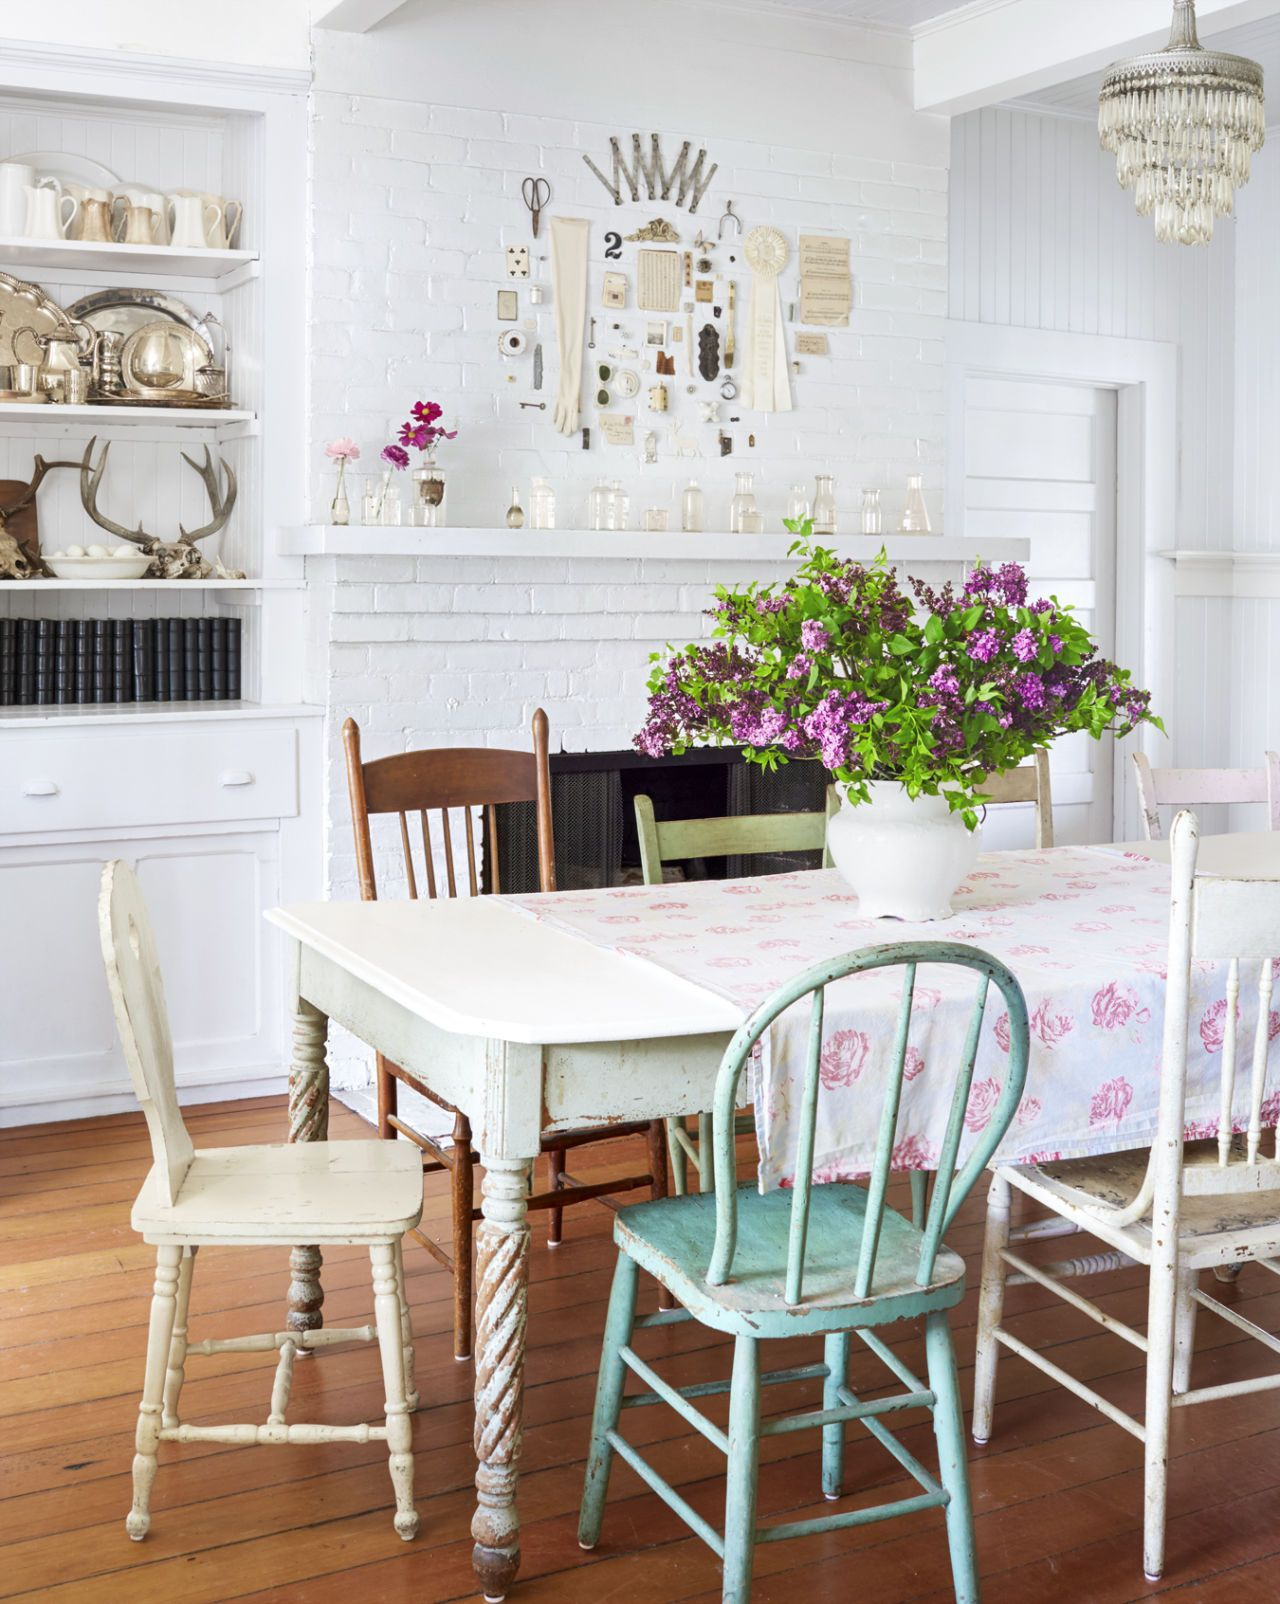 Dining Room Addition Home Design Ideas Pictures Remodel And Decor: 16 Vintage Decorating Ideas From Inside A 19th-Century California Farmhouse